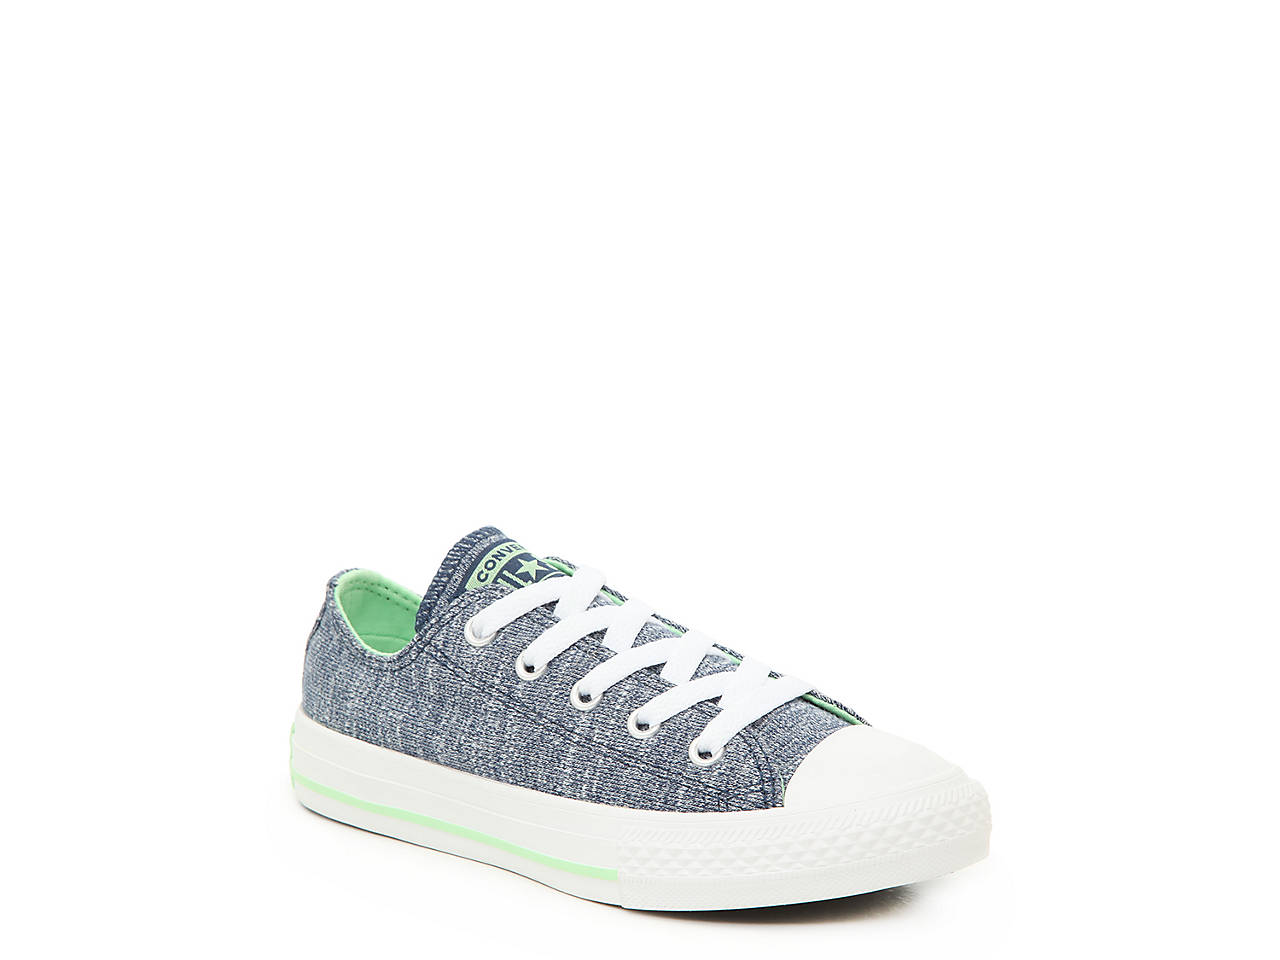 7d65c2fd5f78 Converse Chuck Taylor All Star Fade Pop Youth Sneaker Kids Shoes